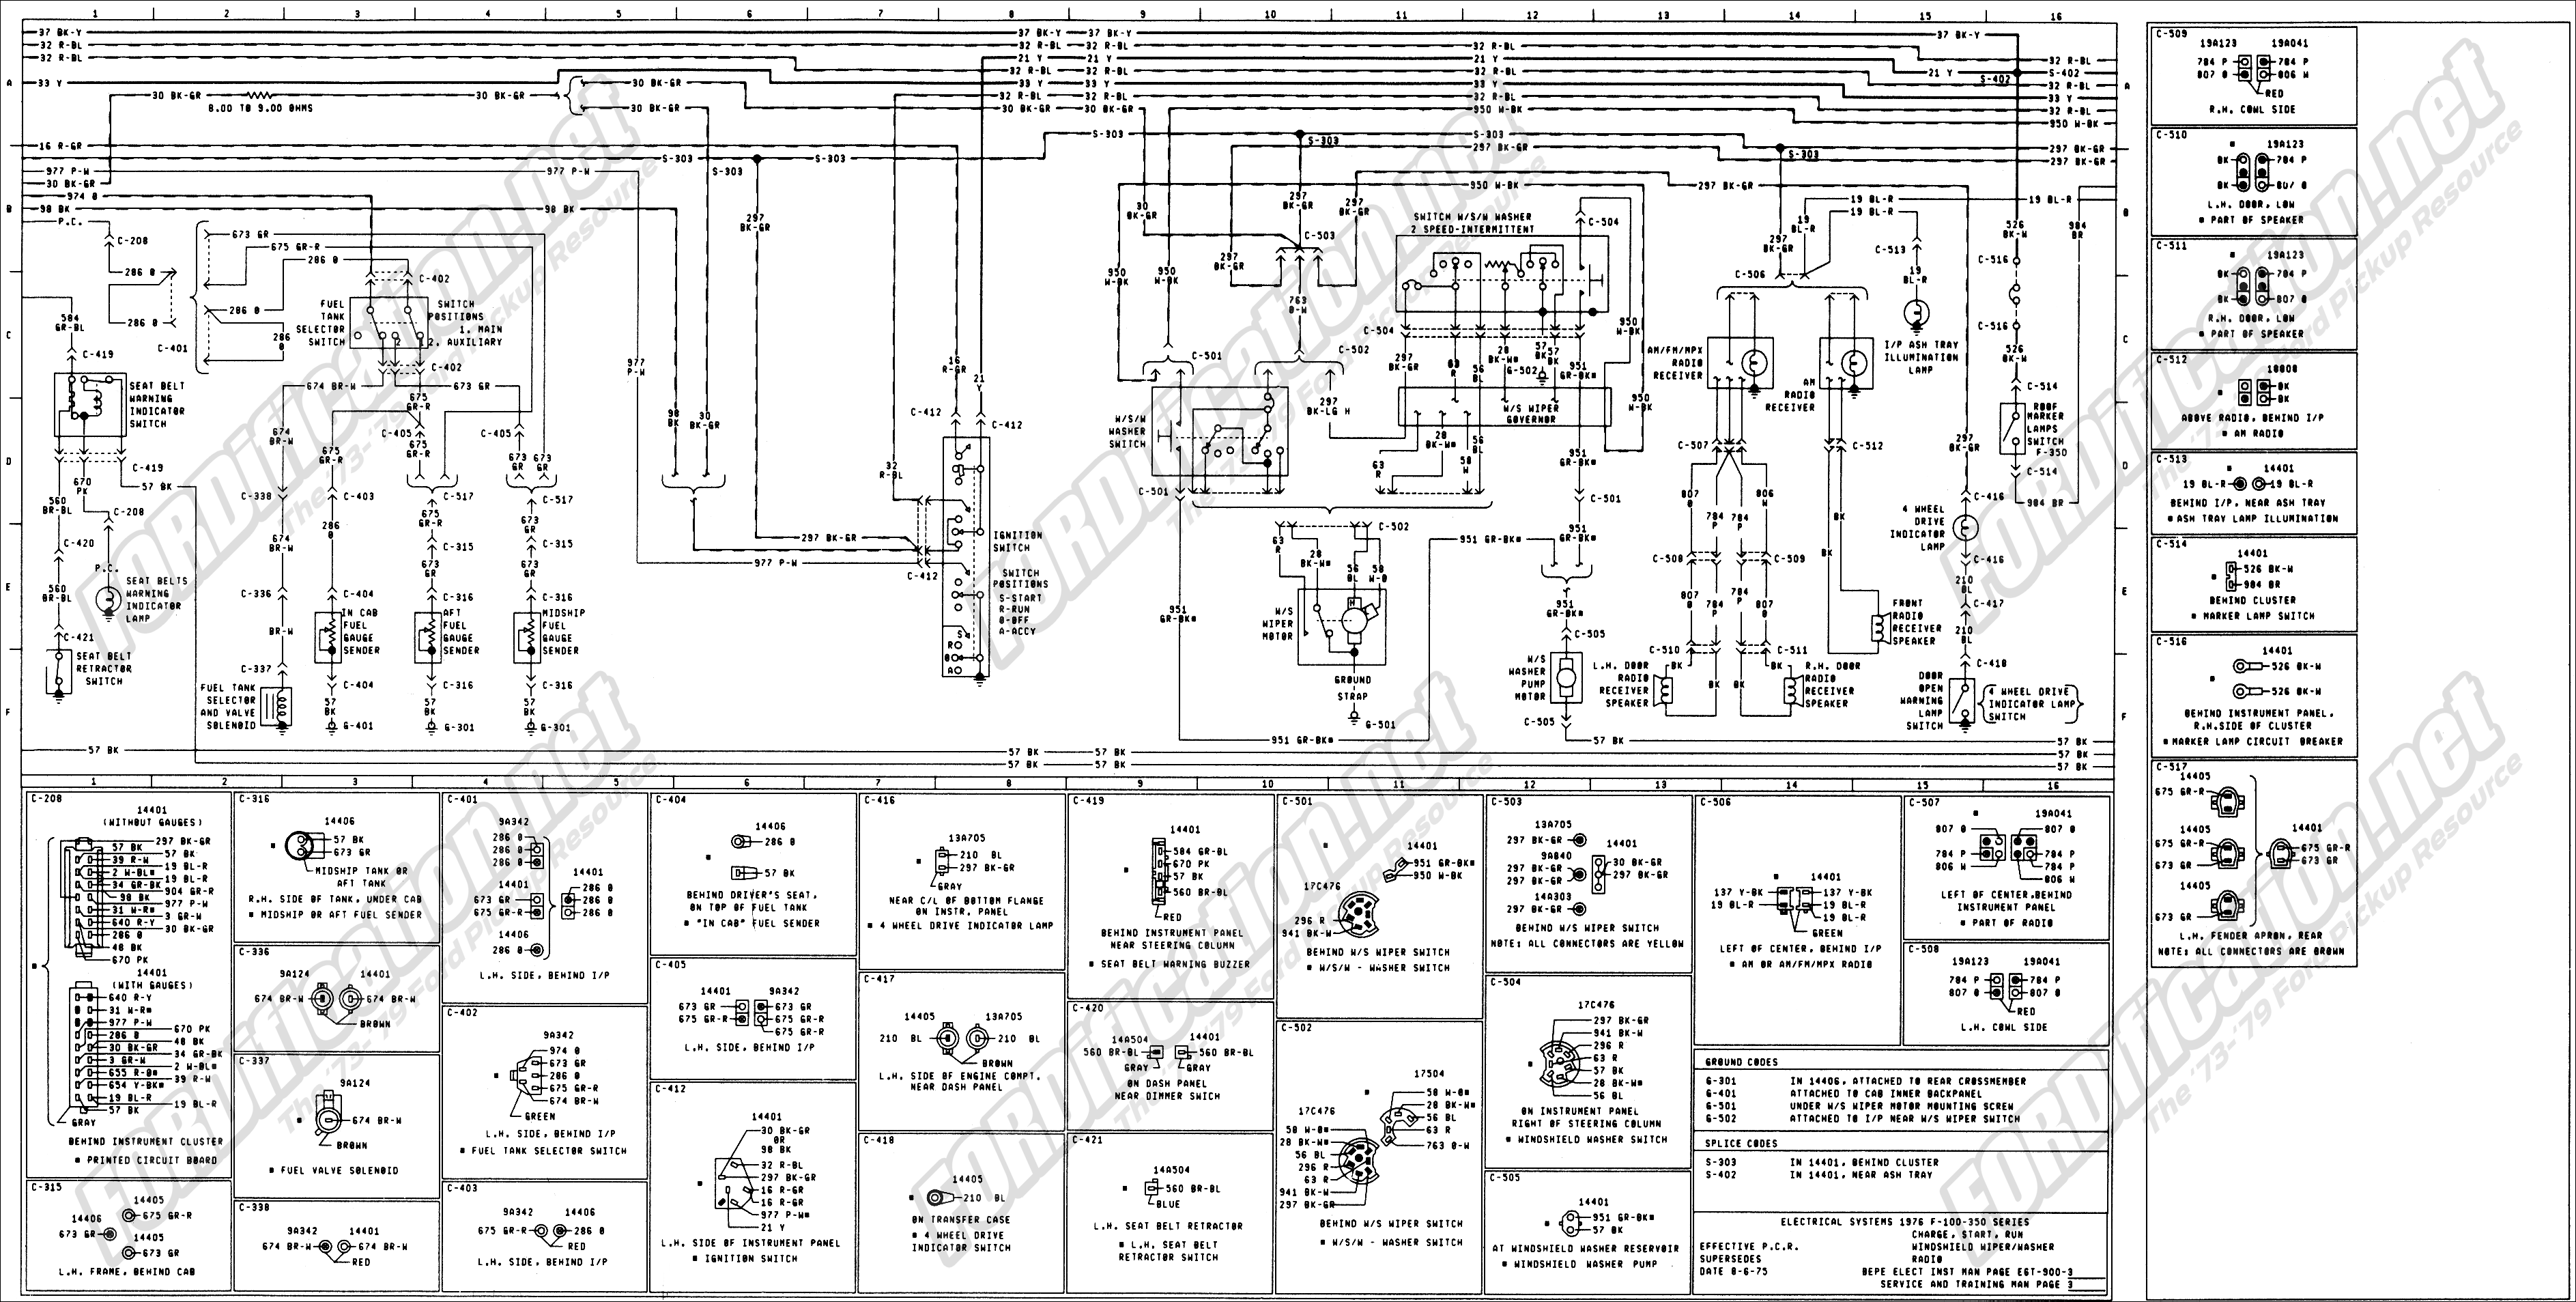 390 F100 Wiring Diagram 75 | Wiring Liry  Corolla Ac Wiring Diagram on